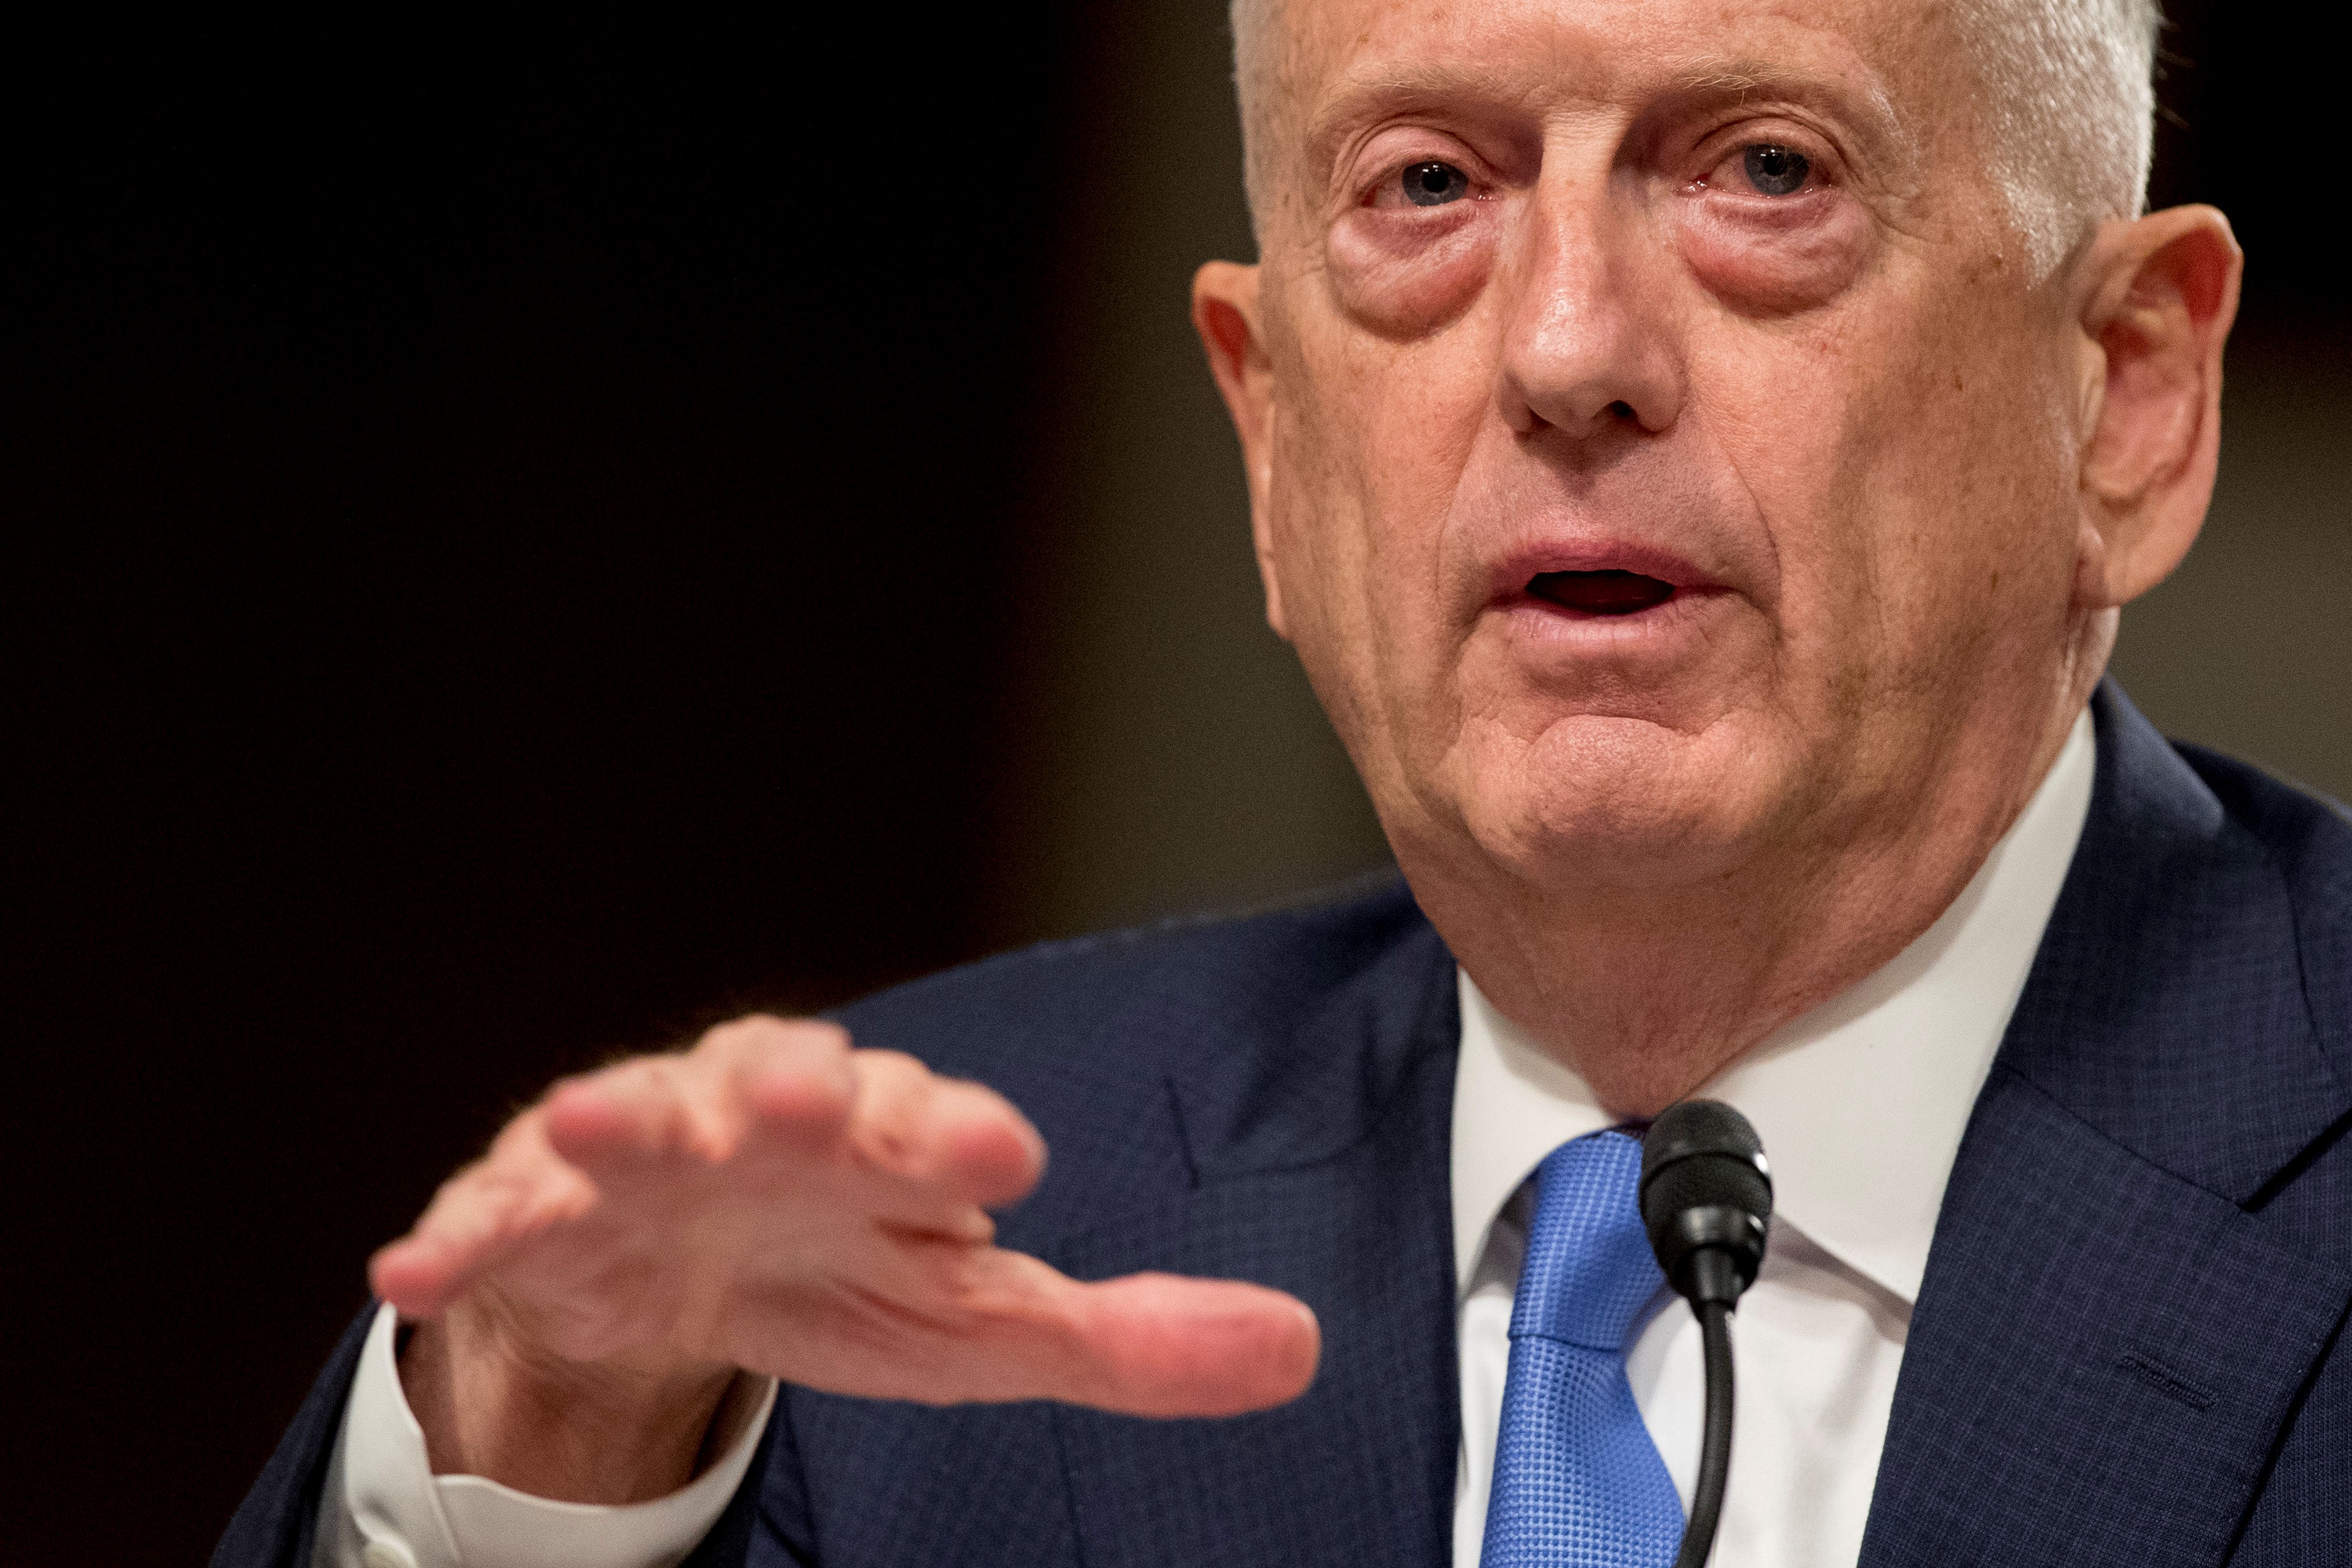 Defense Secretary Jim Mattis challenged reports that U.S. forces left a service member behind. (AP Photo/Andrew Harnik)